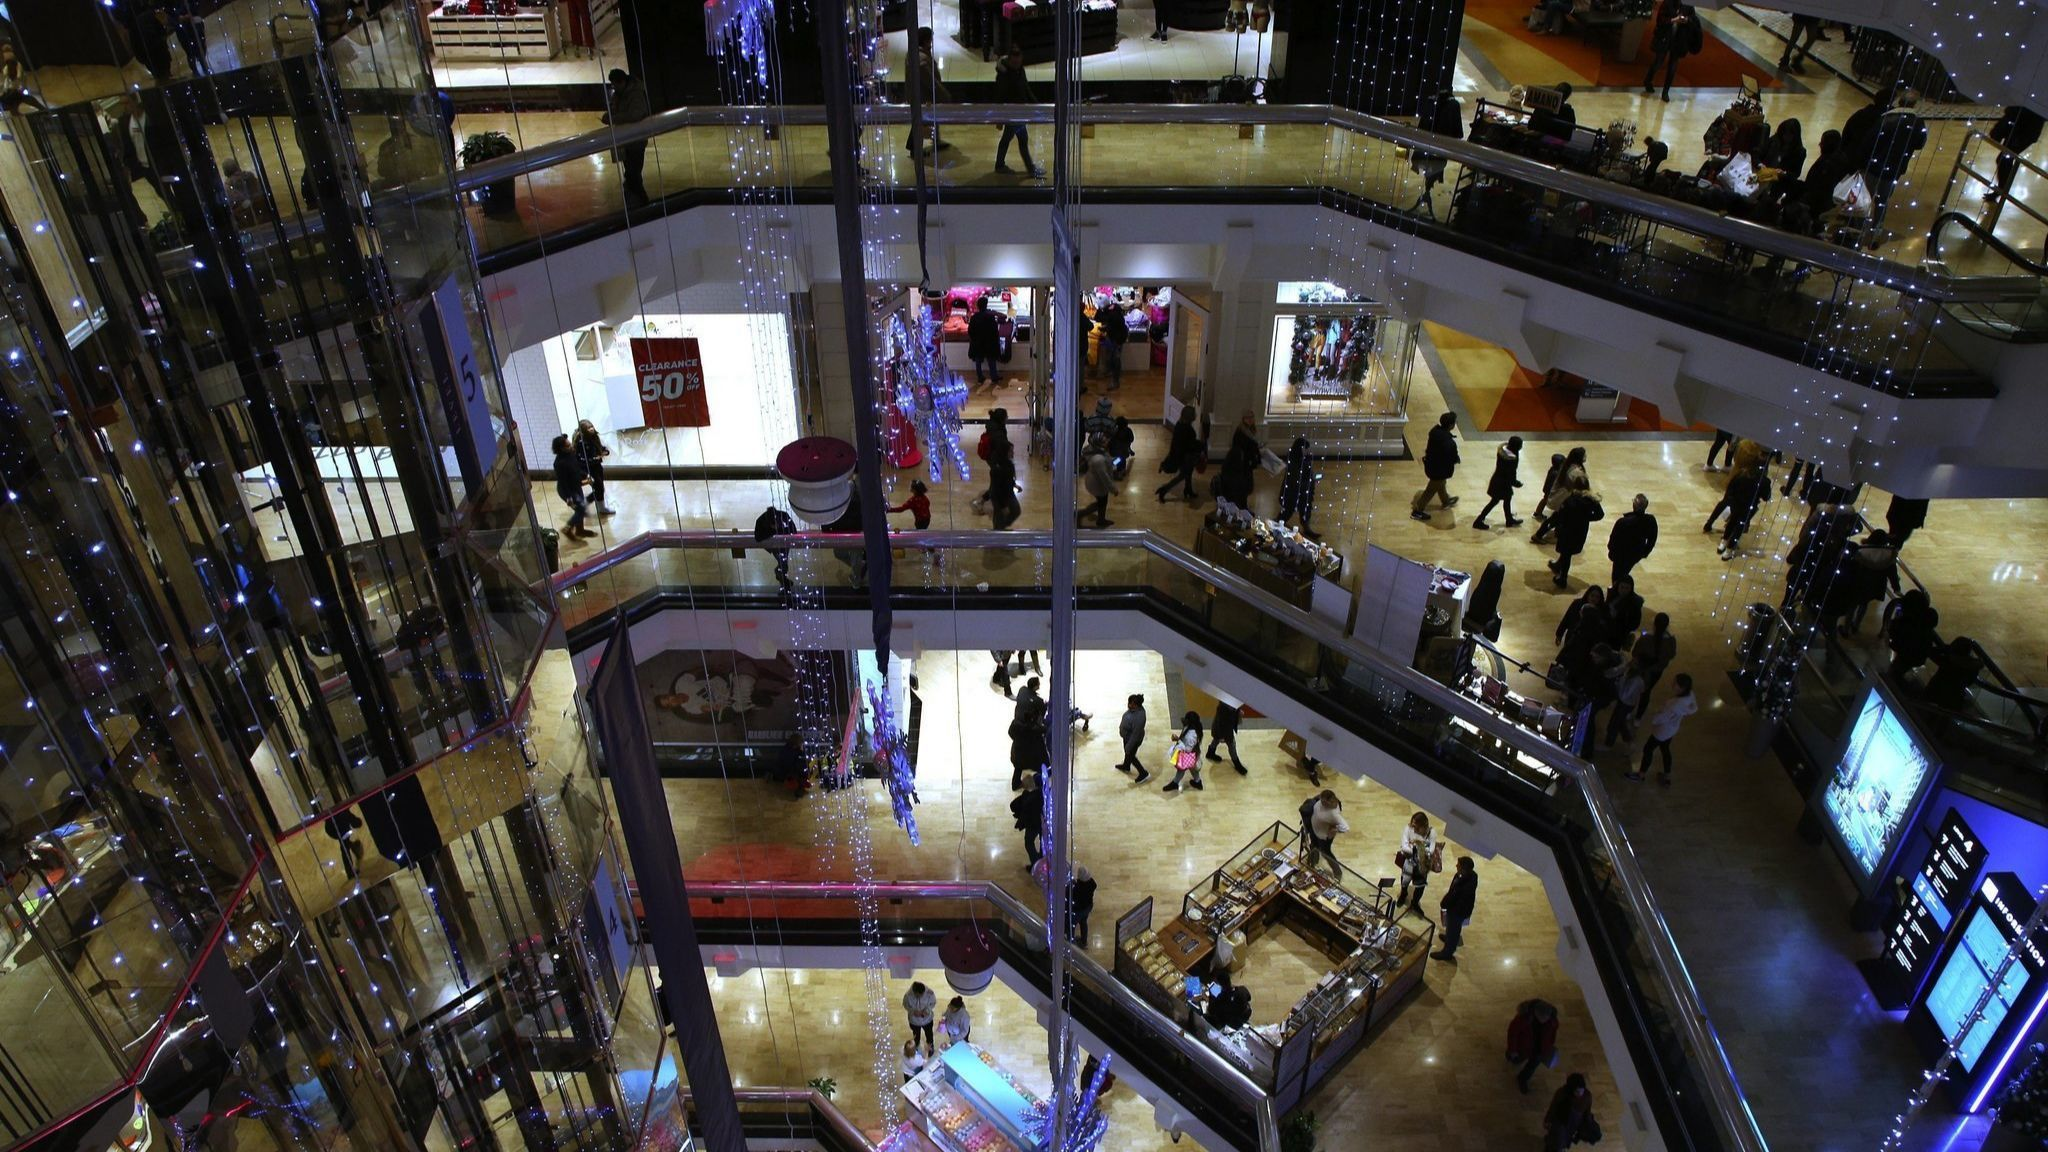 Dave & Buster's plans to open in Water Tower Place go bust